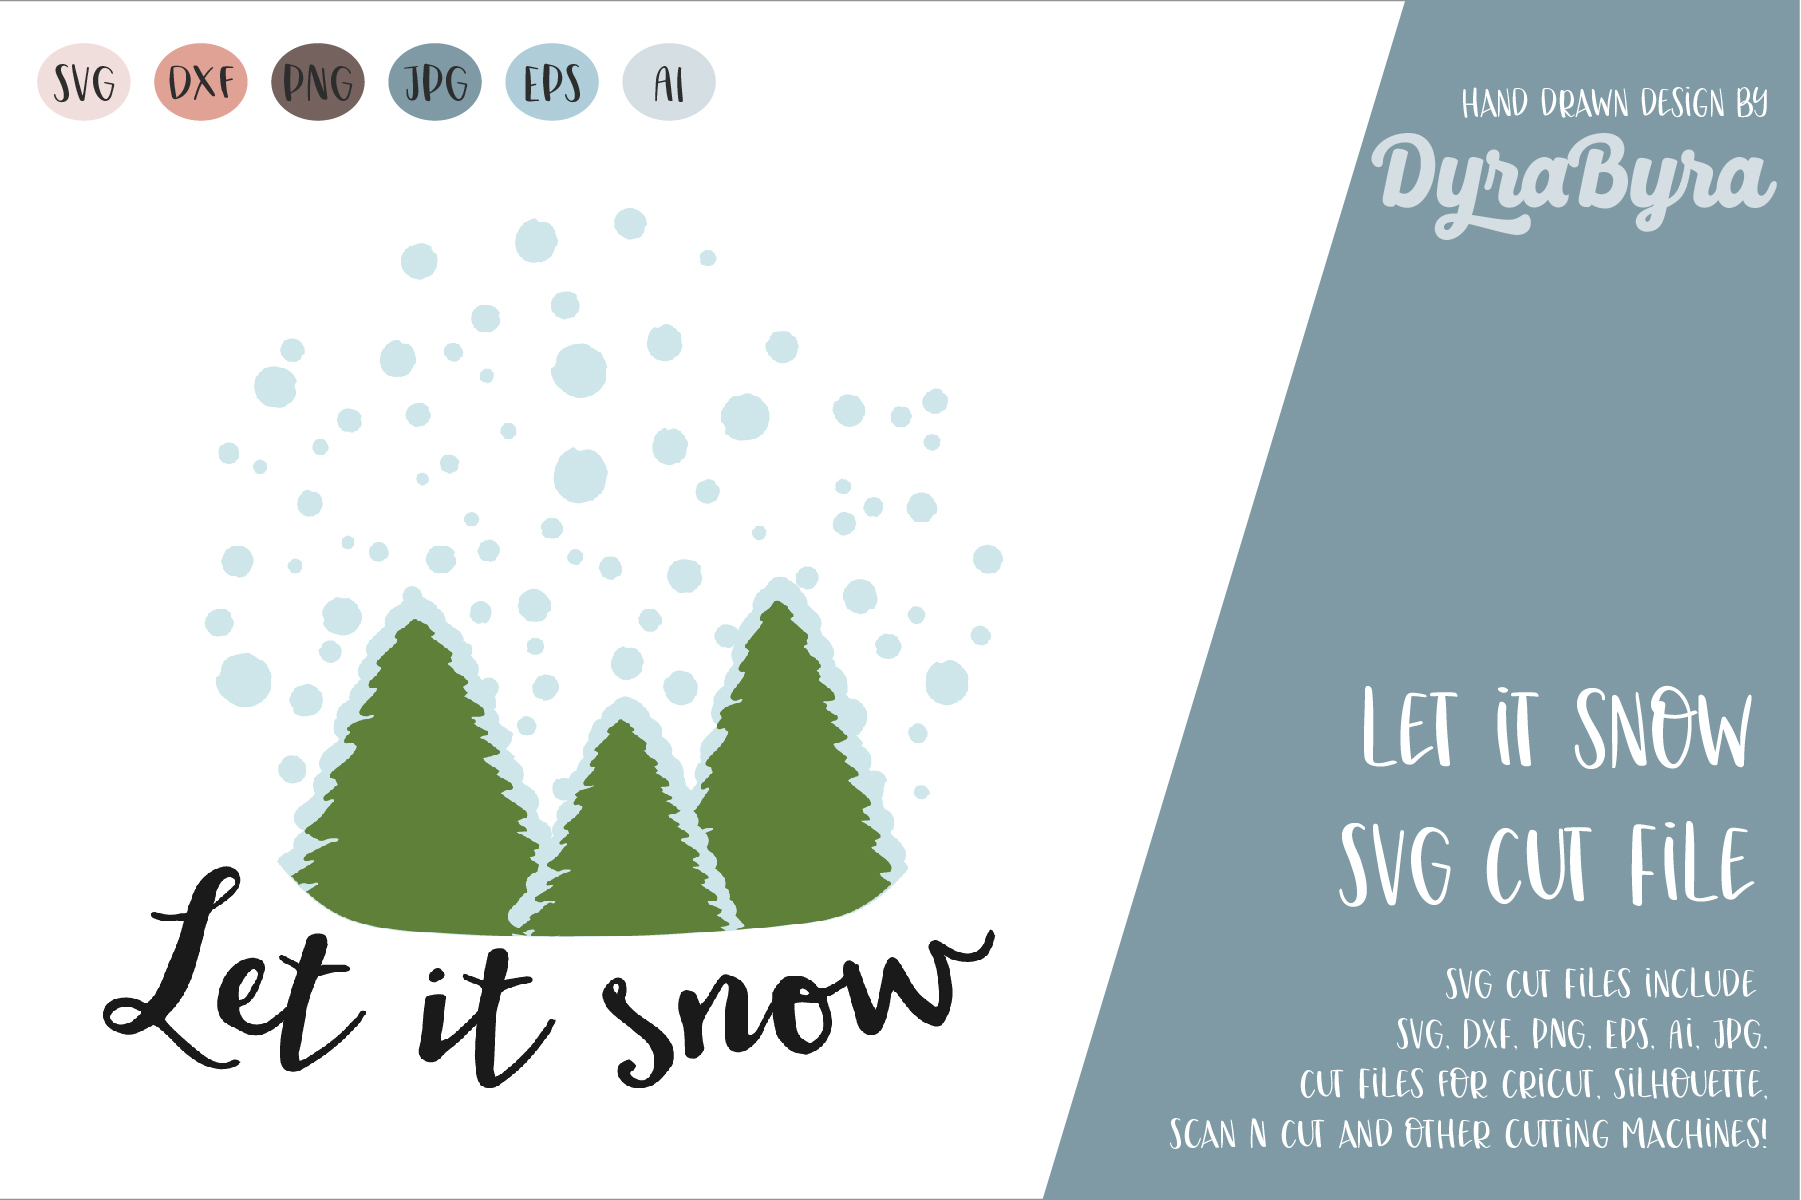 Let it snow SVG / Winter mood SVG / Christmas svg example image 1